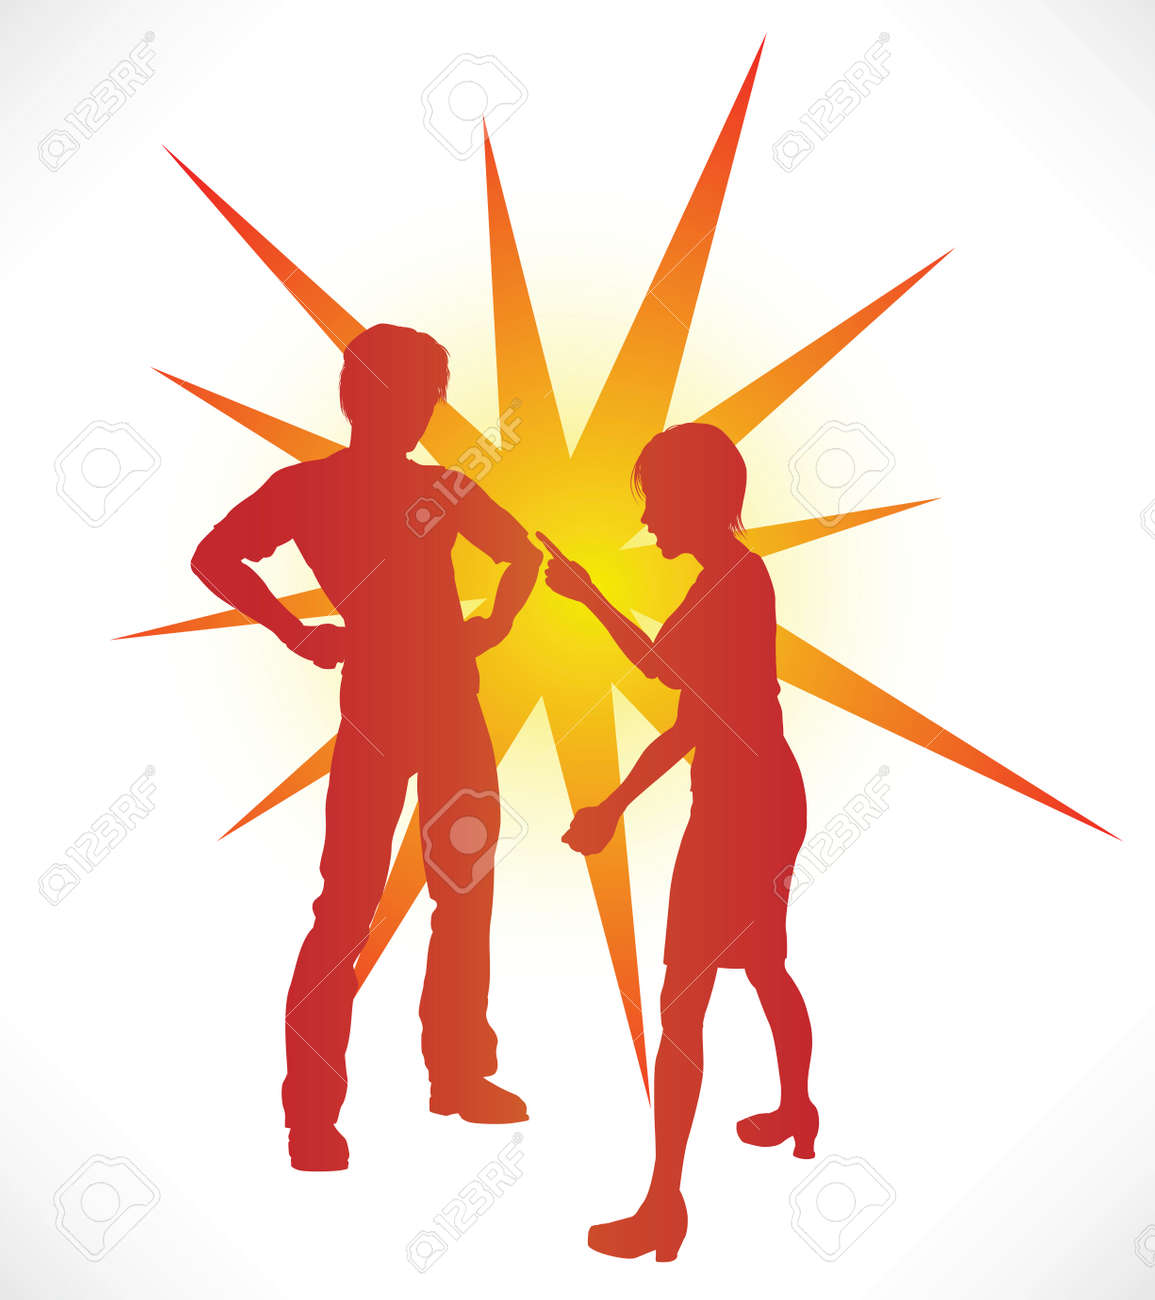 A couple in silhouette having a heated argument. Stock Vector - 9088565